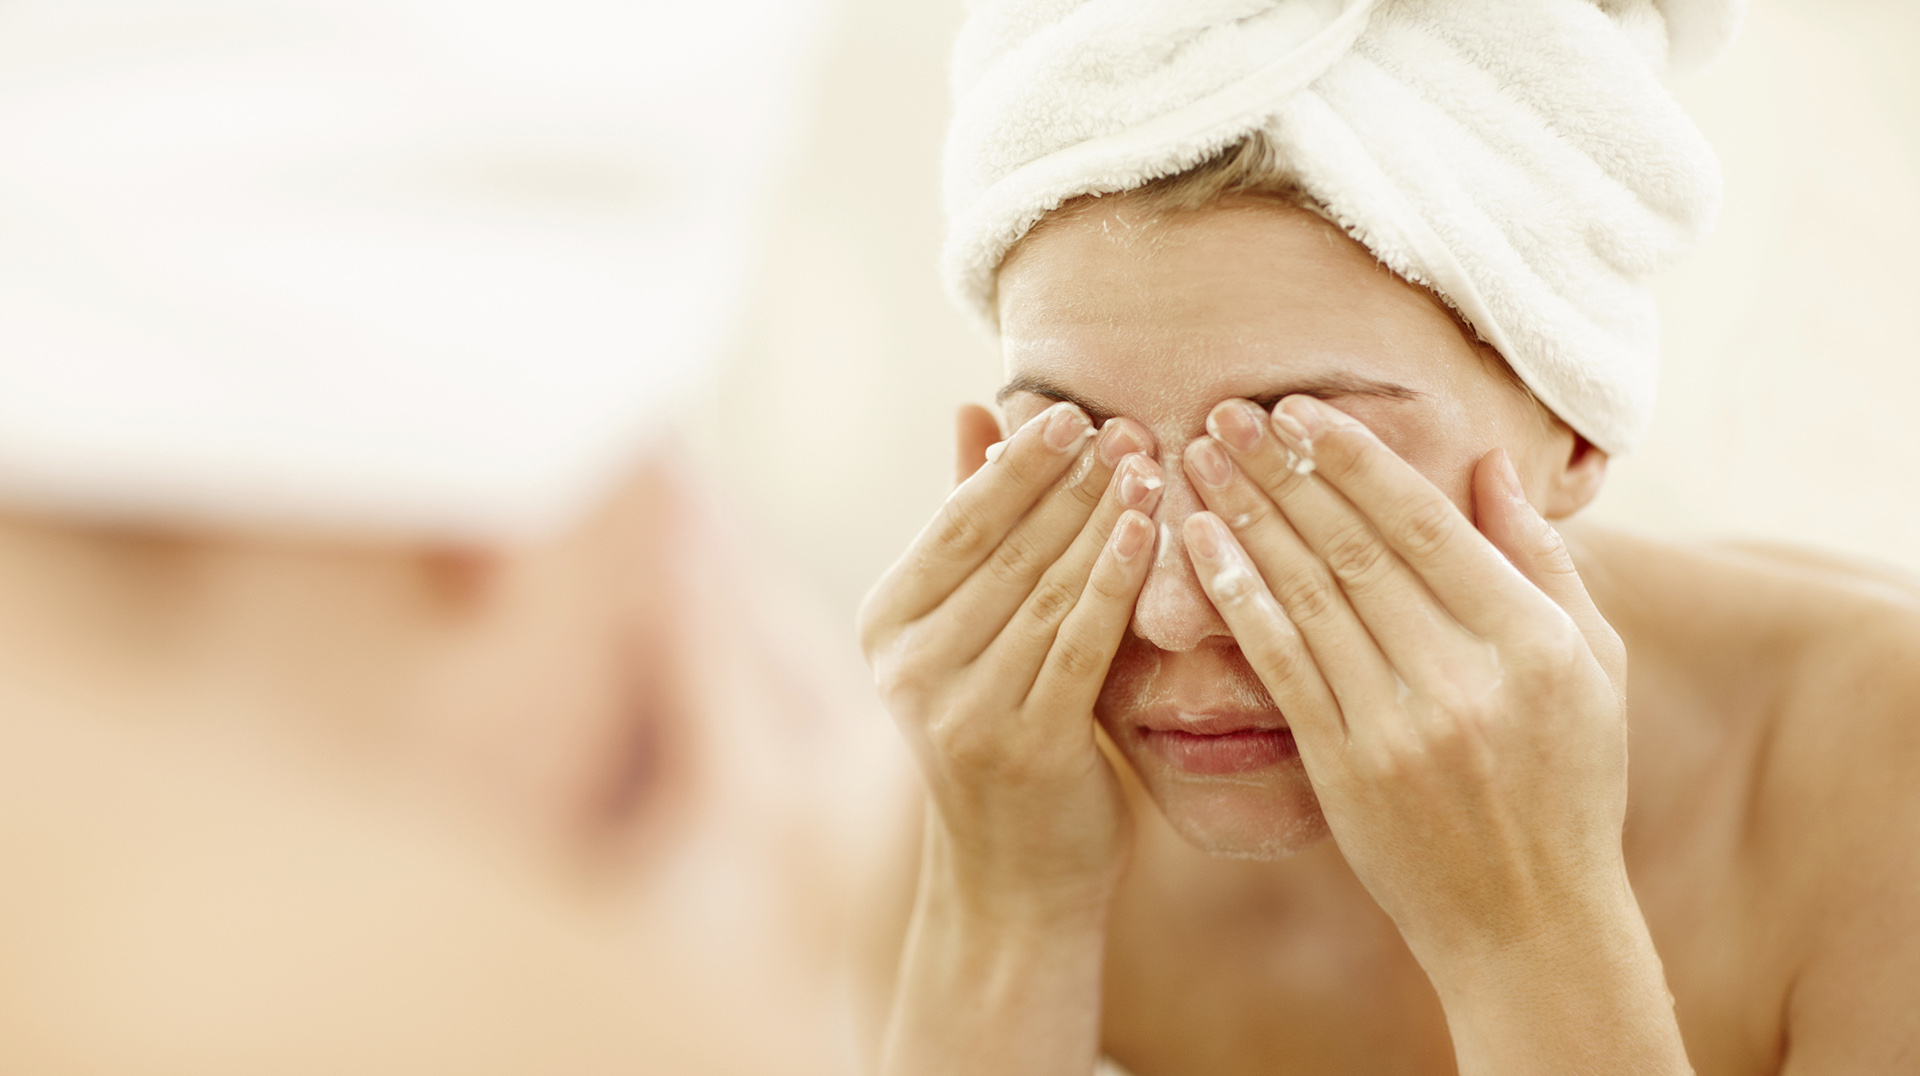 Are You Properly Cleaning Your Face?